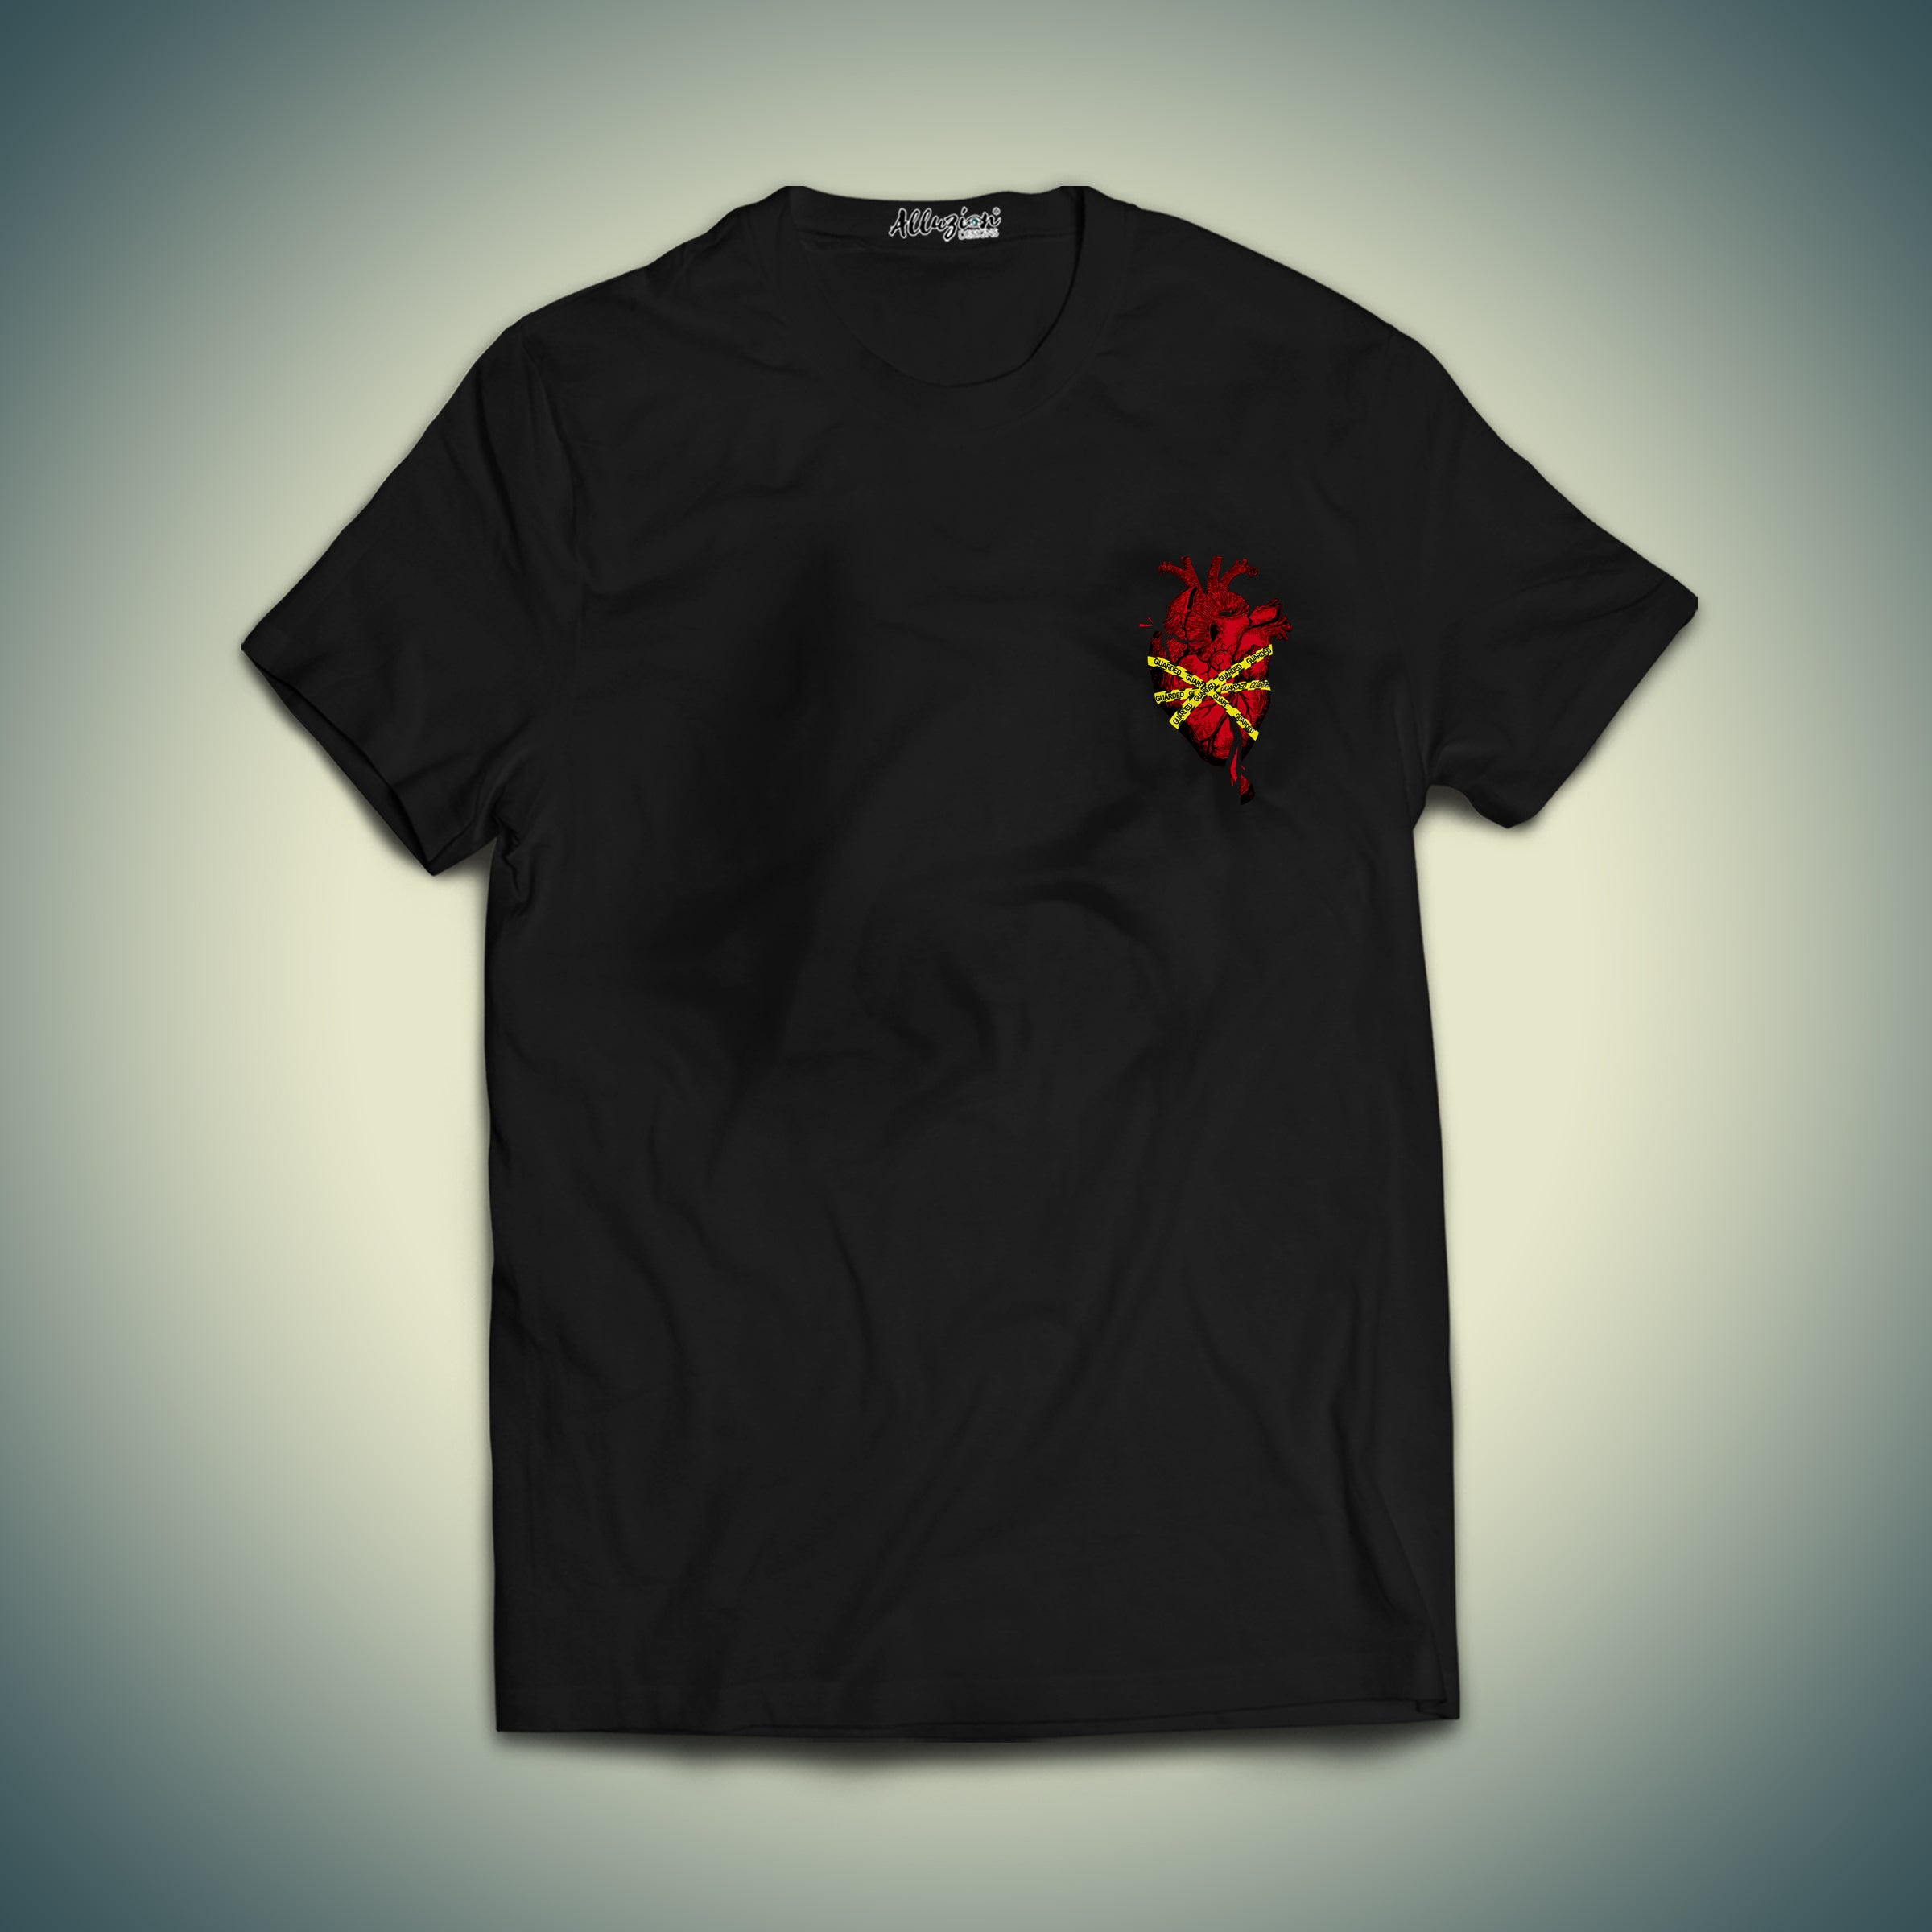 Guarded Heart T-shirt